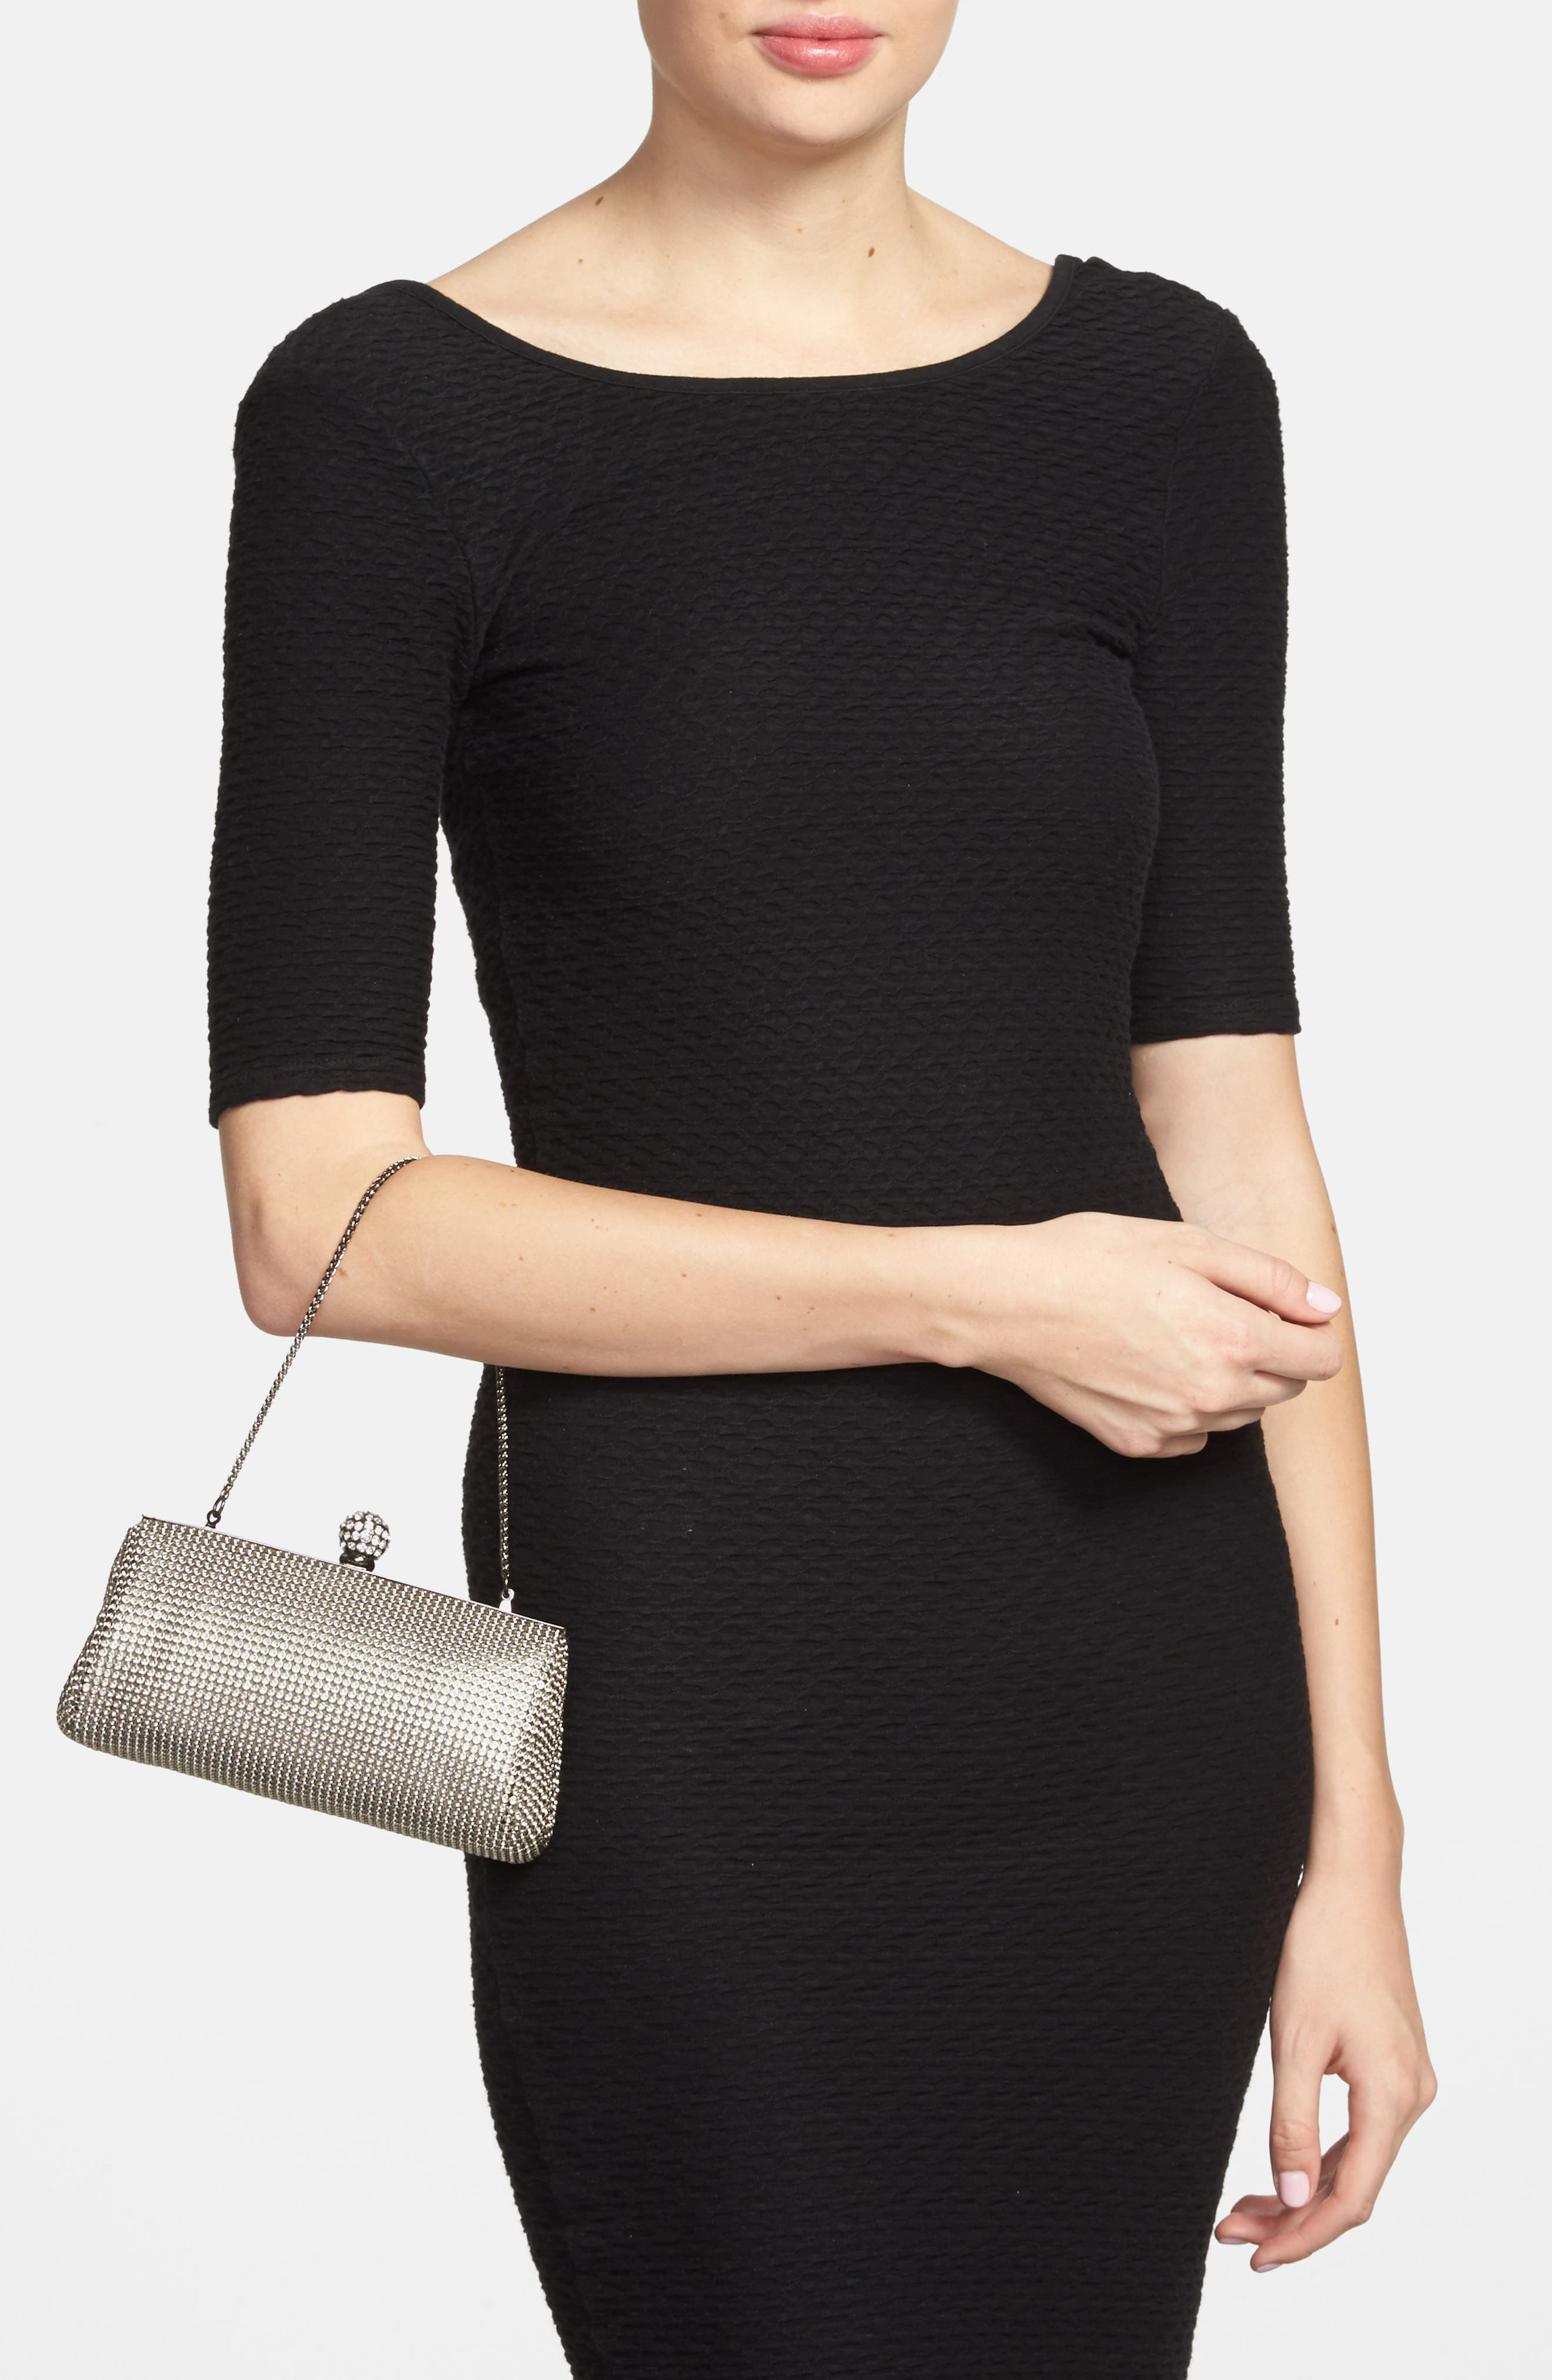 WHITING & DAVIS,                             'Crystal' Mesh Clutch,                             Alternate thumbnail 2, color,                             PEWTER